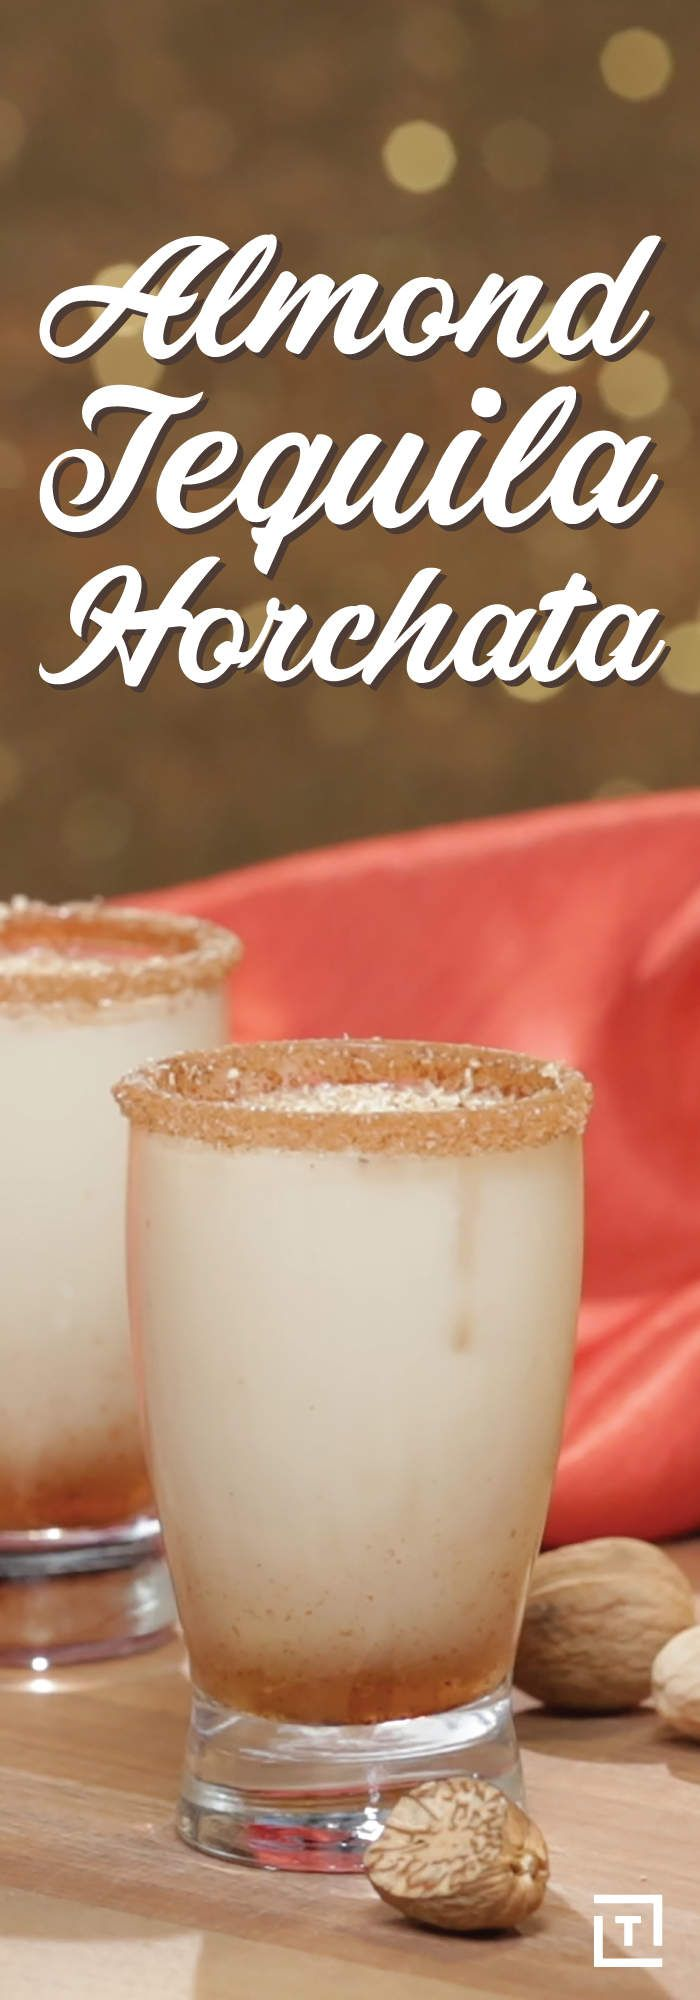 Tequila, meet horchata. We're firm believers that tequila is always a good idea, mostly because if we said it wasn't you'd still drink it just as much (if not more). Ditch the shots and slow your roll for something a bit sweeter, like this absurdly delicious recipe for an almond tequila horchata. We can't decide if it's the tropical vacation you can't afford in a glass, or if it's the boozy milkshake you've always dreamed of -- all we know is it's damn good and you need to make it now.